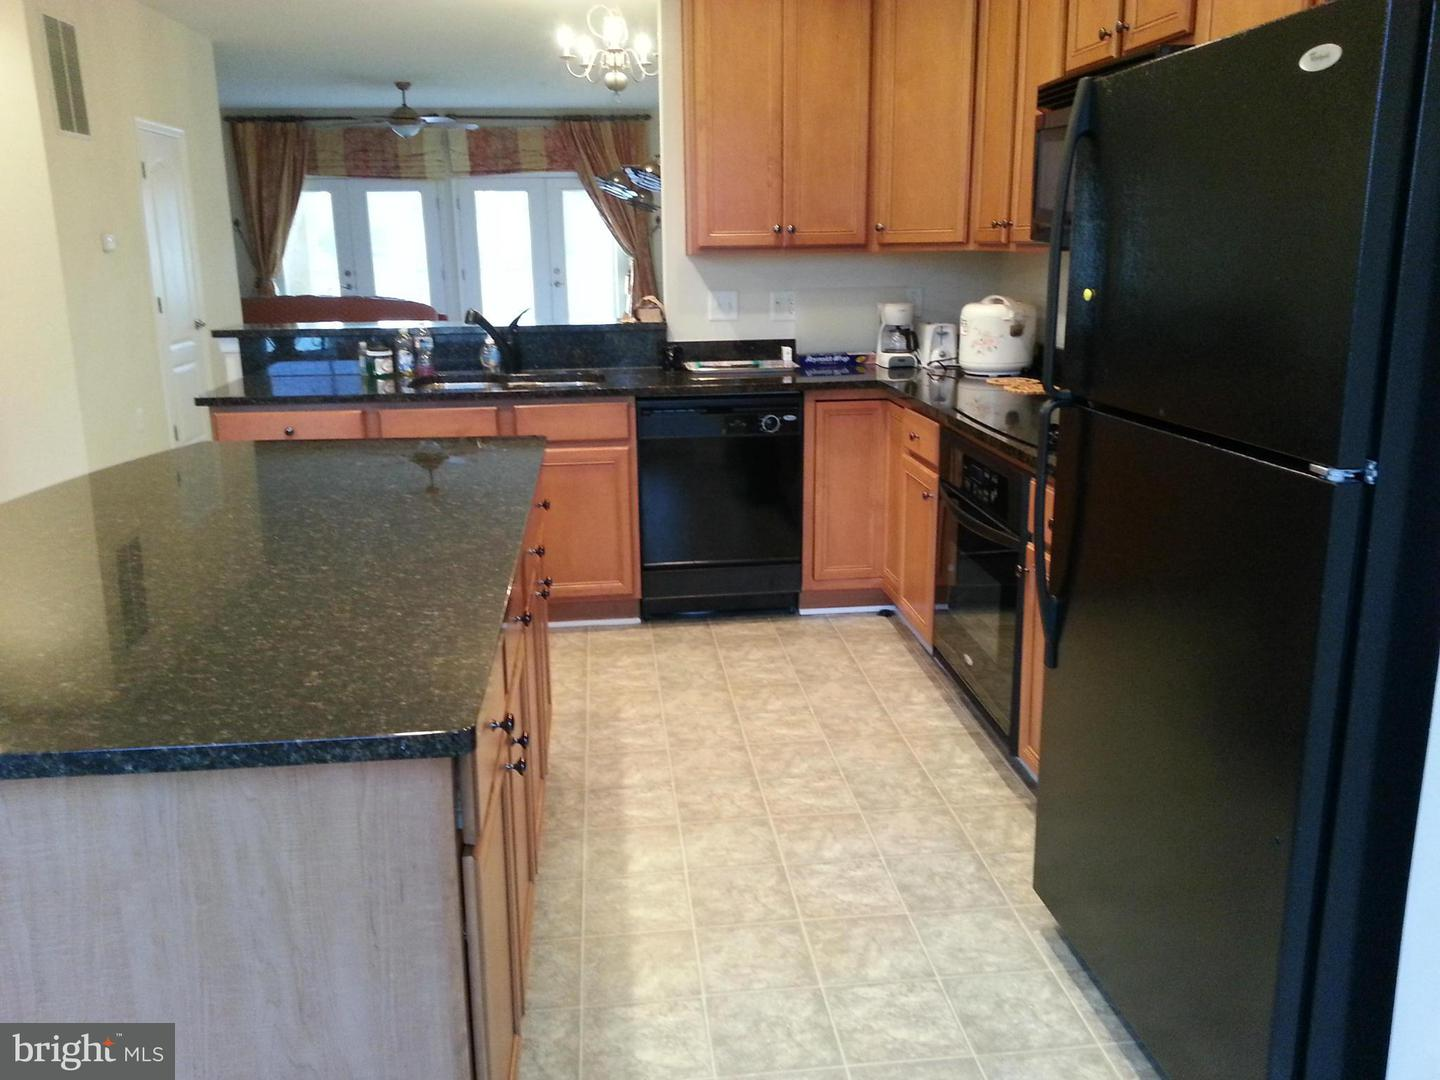 Additional photo for property listing at 11200 Seabiscuit Ln #307  Berlin, Maryland 21811 United States